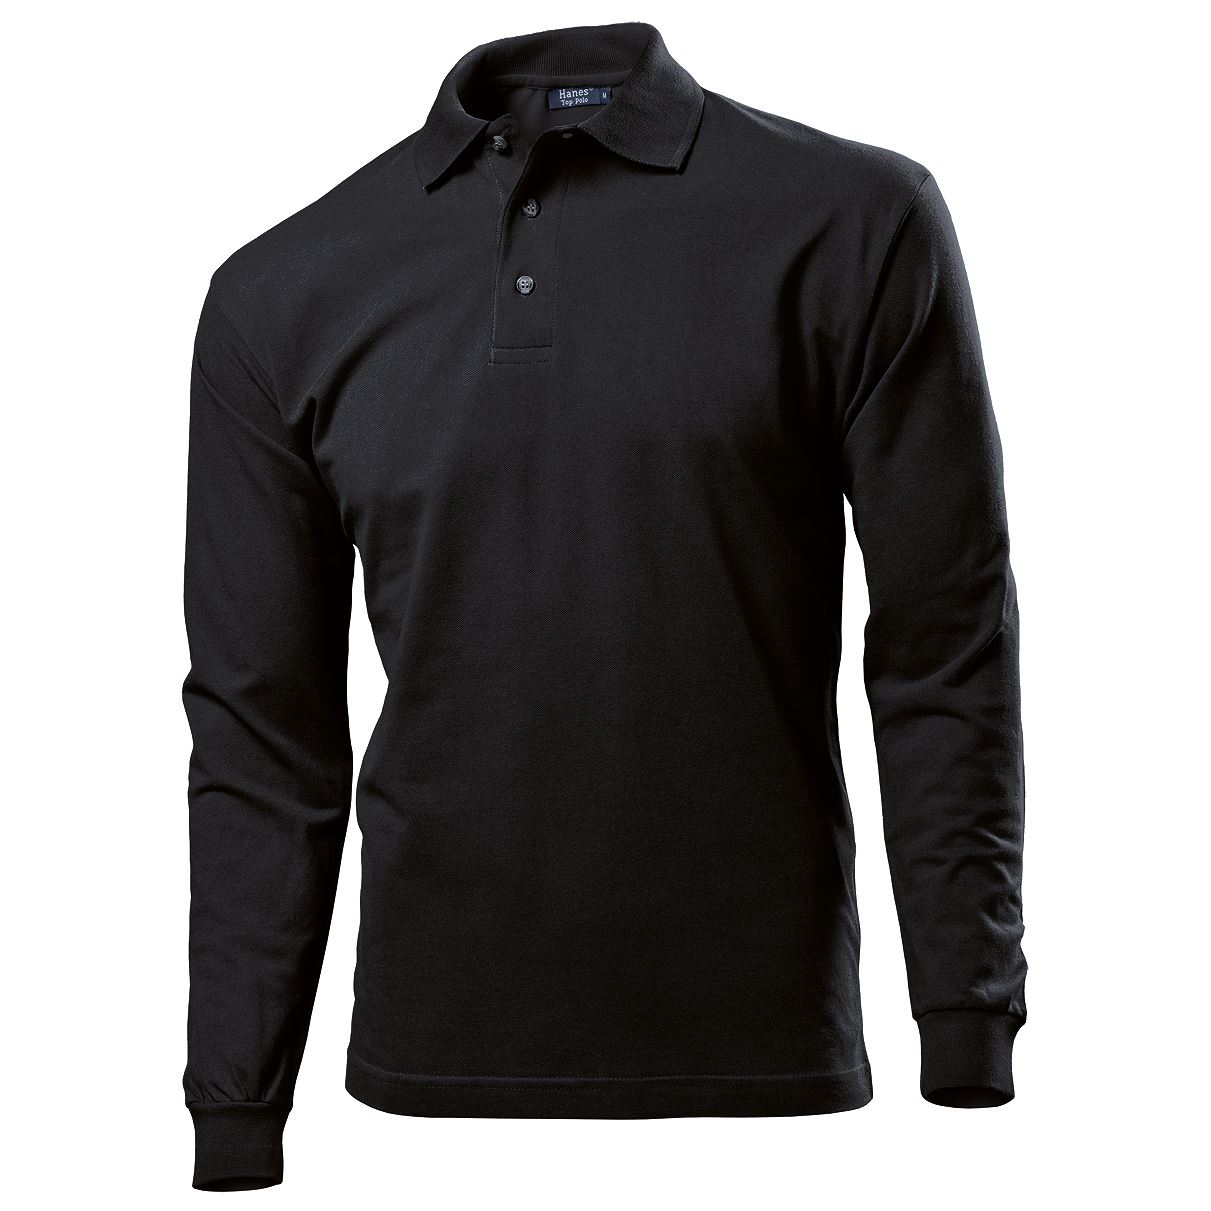 Mens gents hanes polo t shirt top long sleeve 100 cotton for Mens 100 cotton long sleeve t shirts